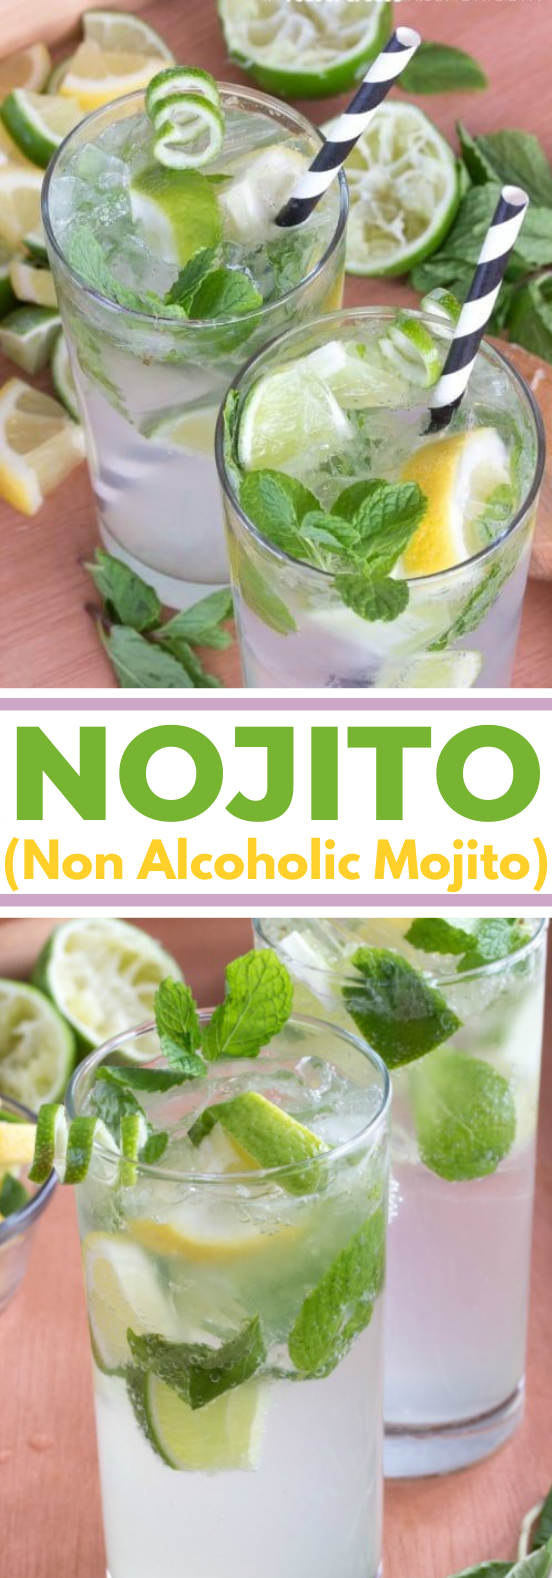 Nojito Recipe #drink #nonalcohol #summer #soda #beverages